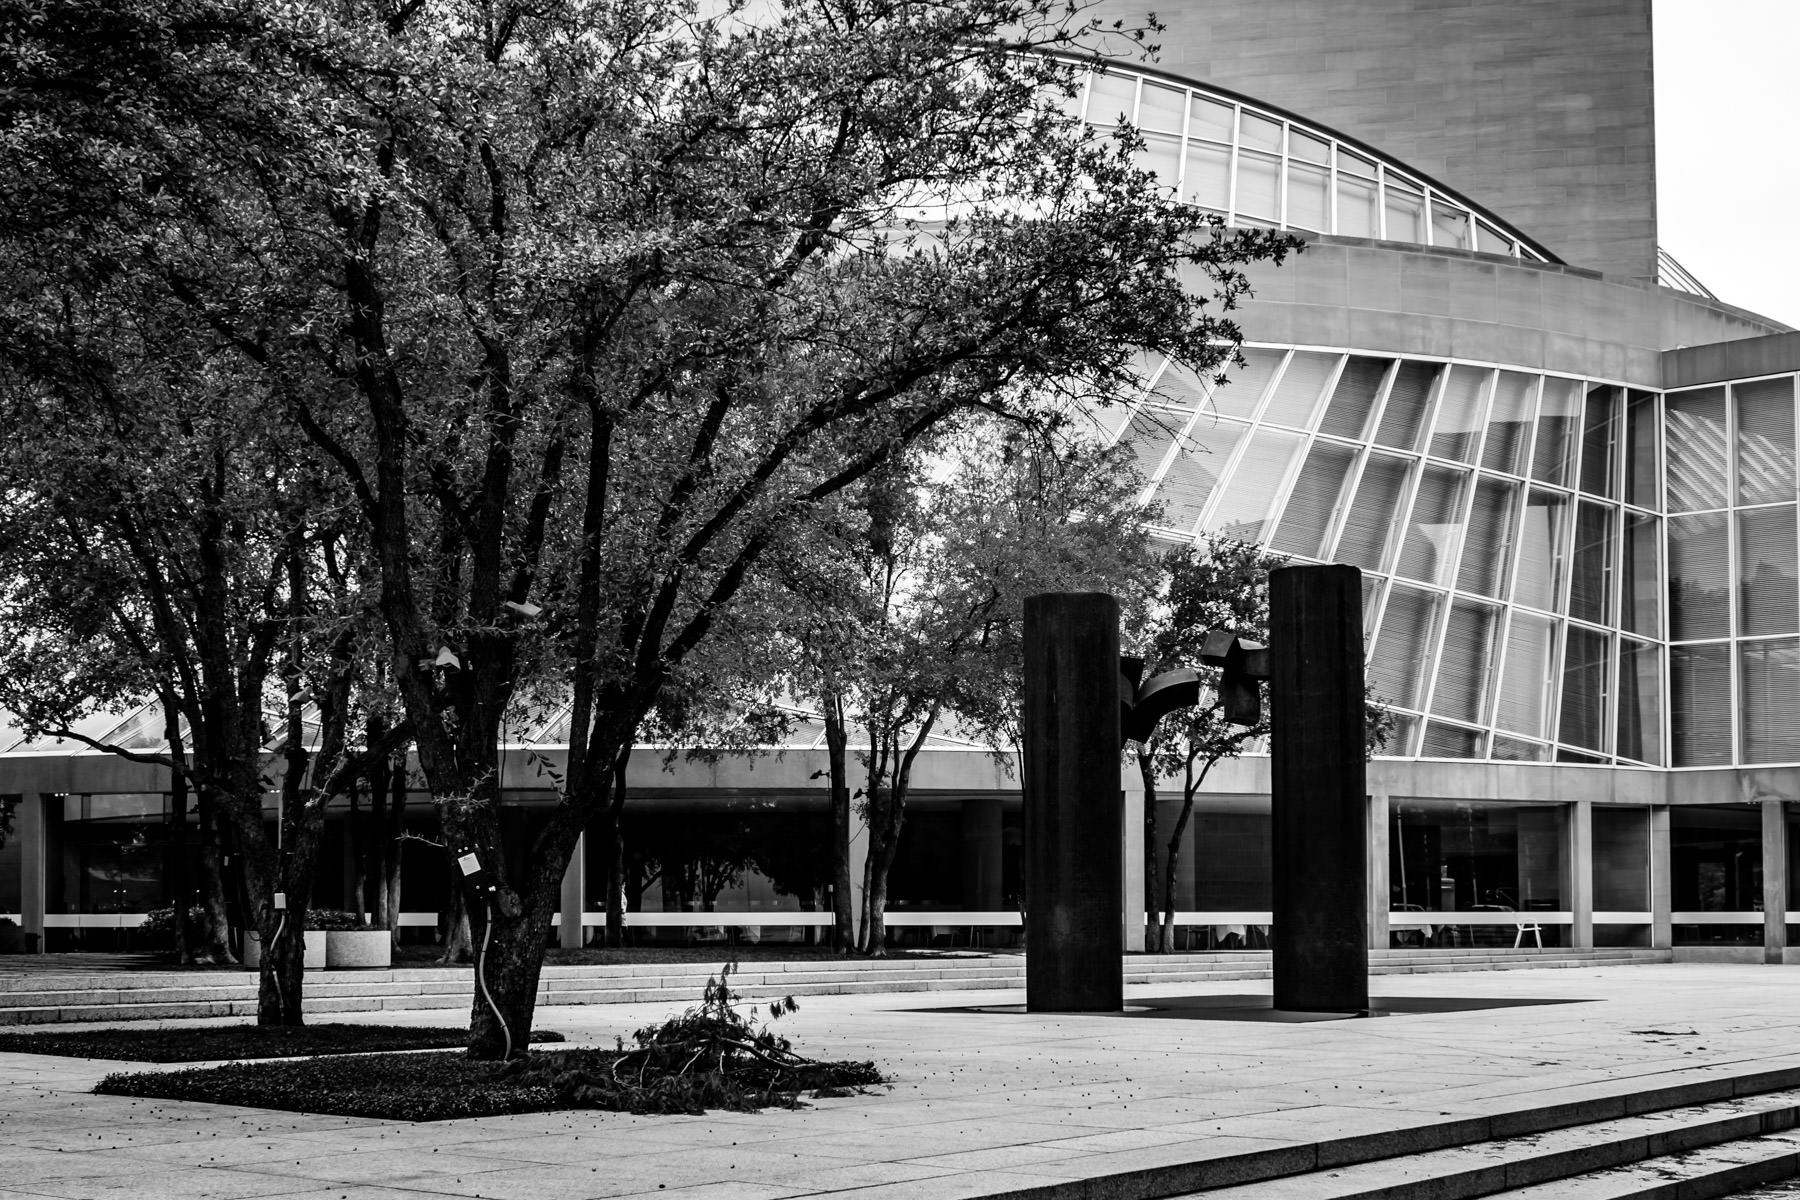 Dallas' Morton H. Meyerson Symphony Center, designed by I.M Pei and opened in 1989.